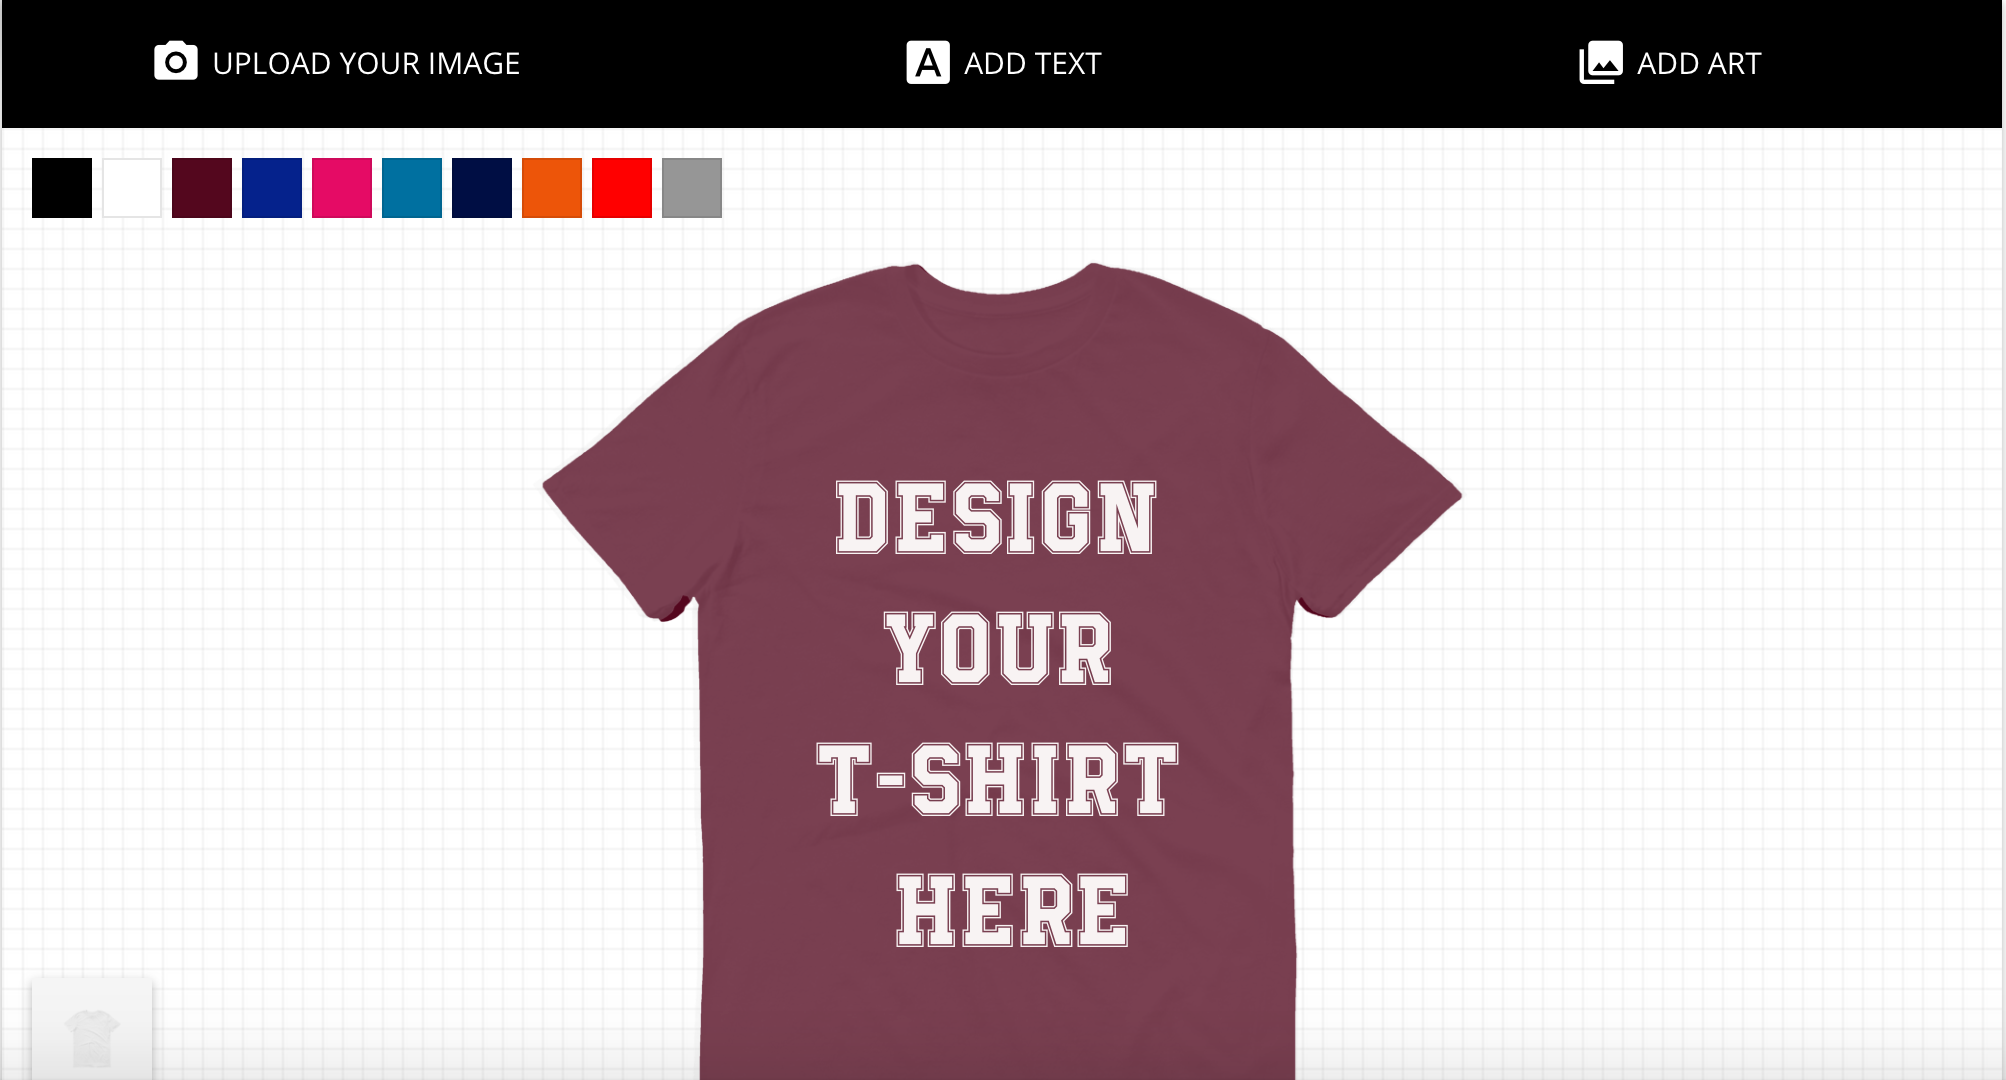 Class tee printing free t shirt design lab instant for How to design and sell t shirts